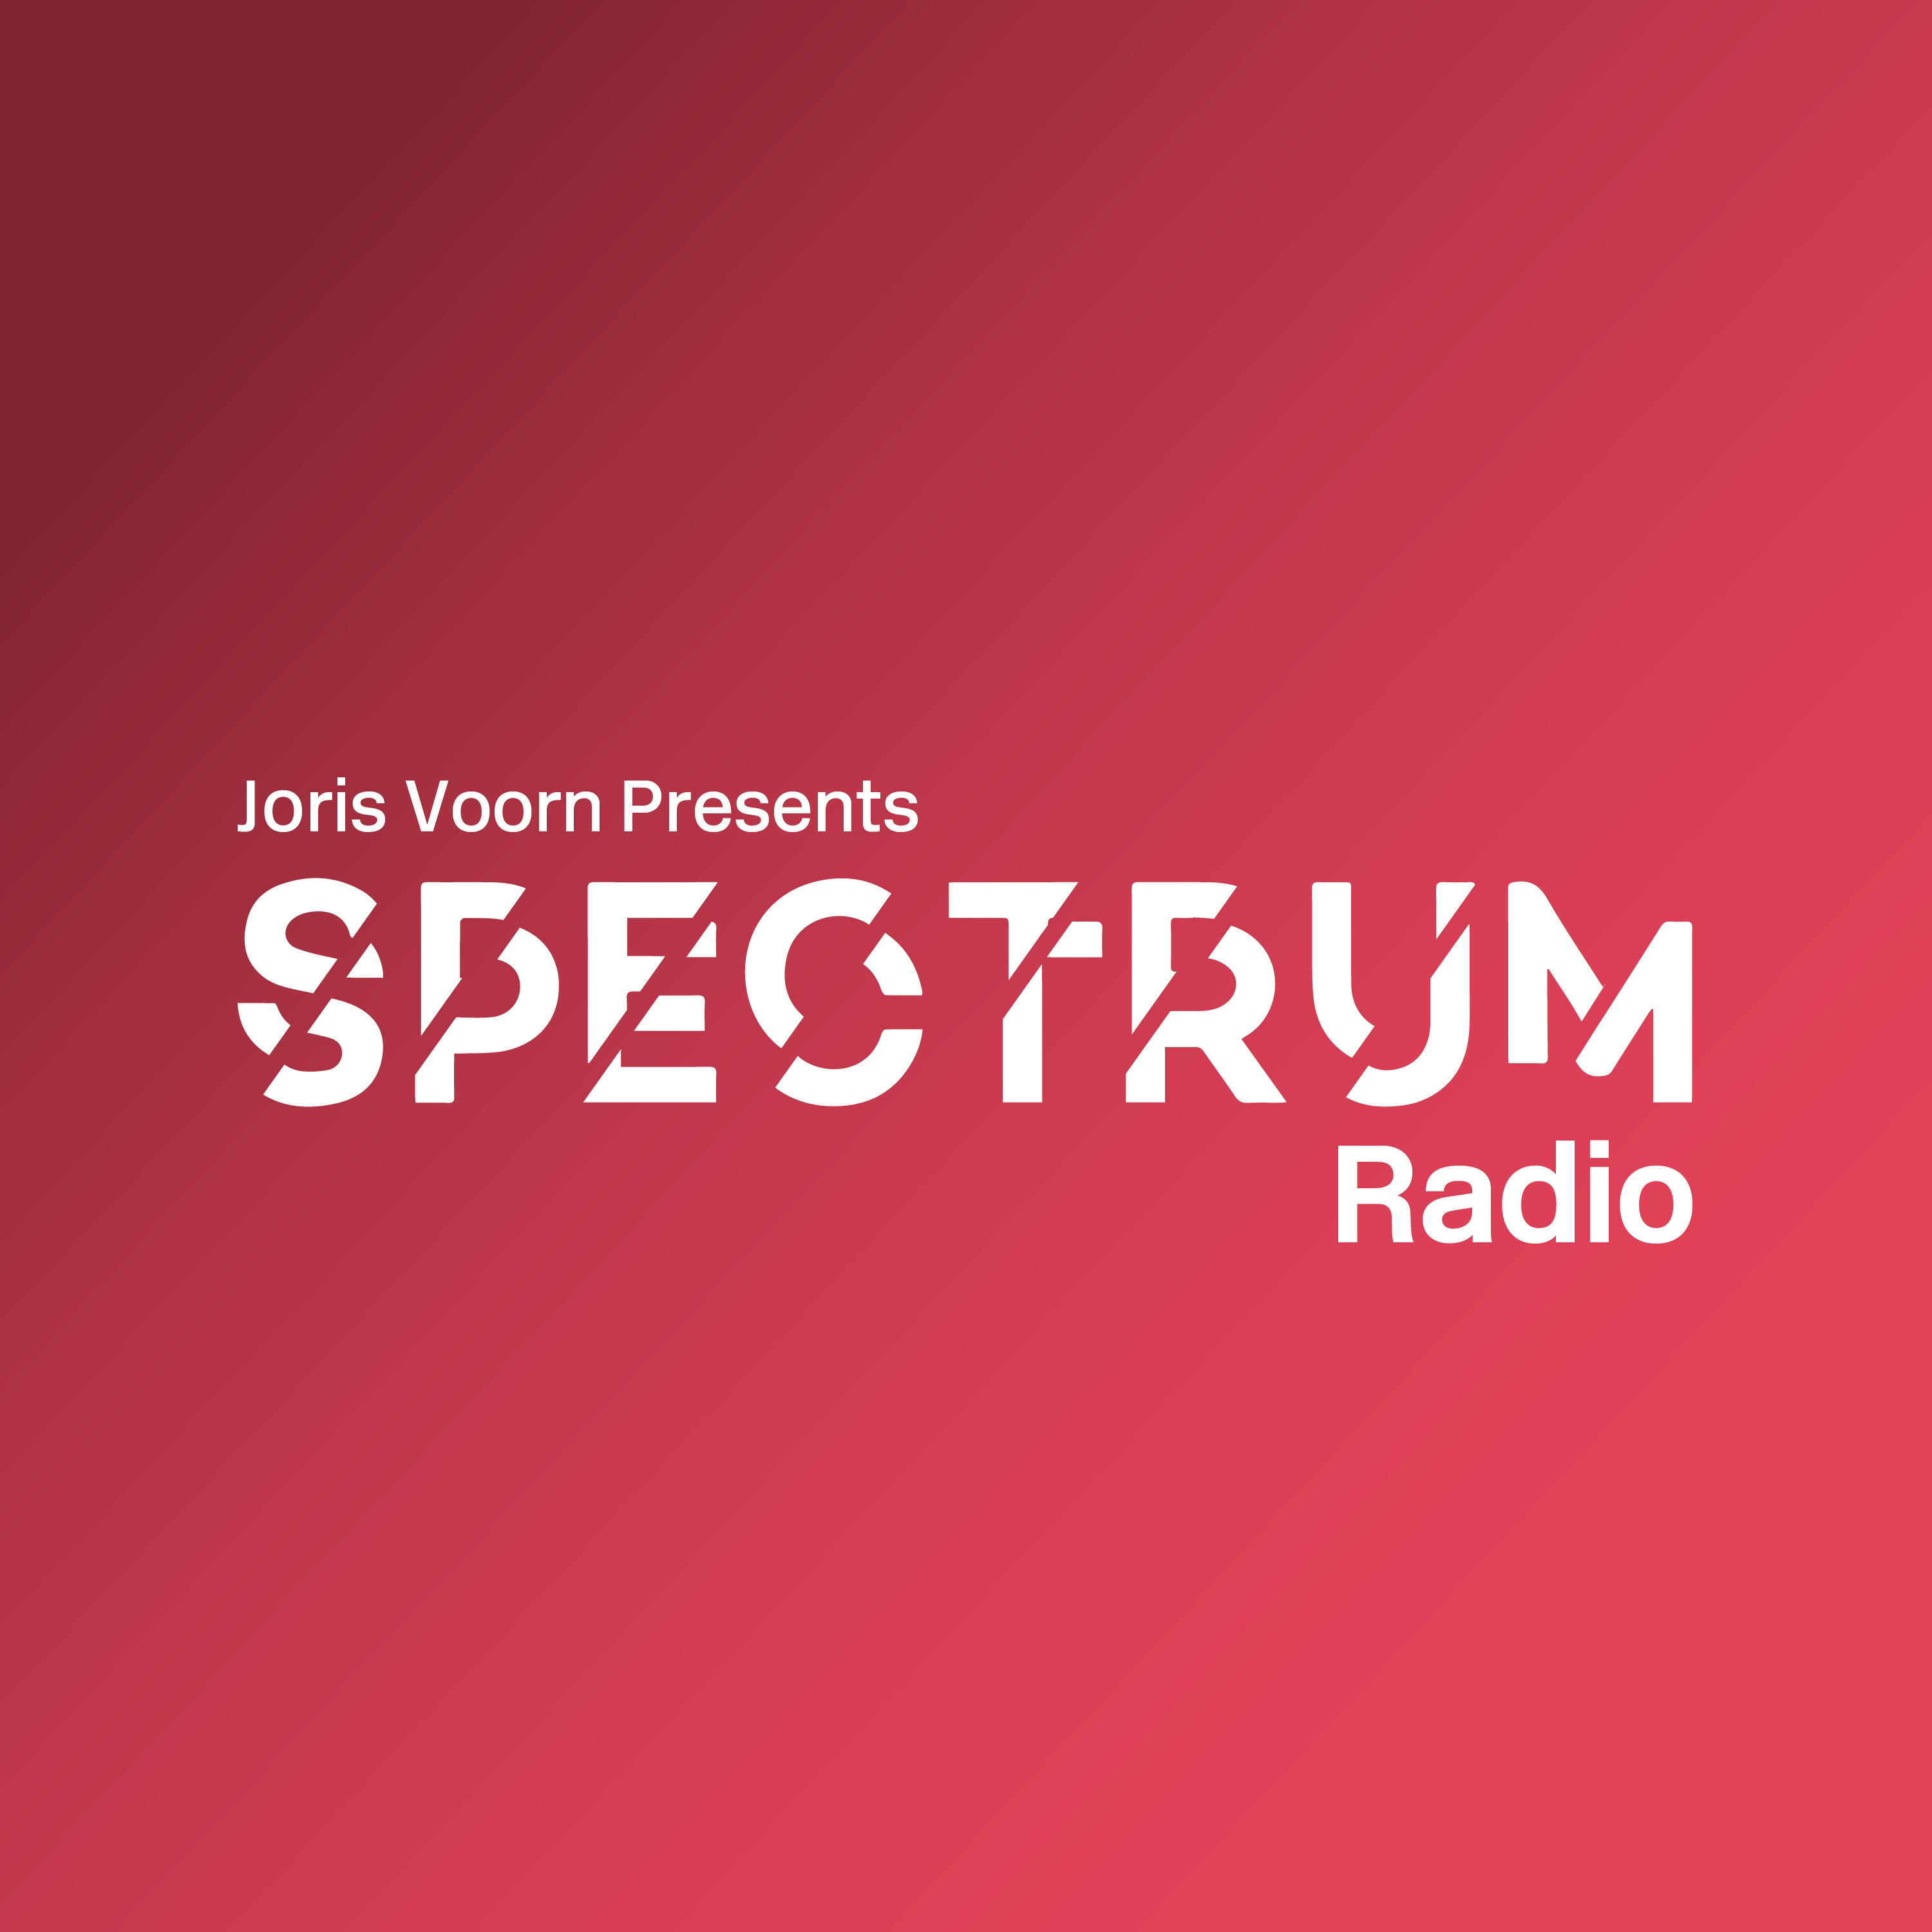 Delta Podcasts - Spectrum Radio by Joris Voorn (23.06.2018)